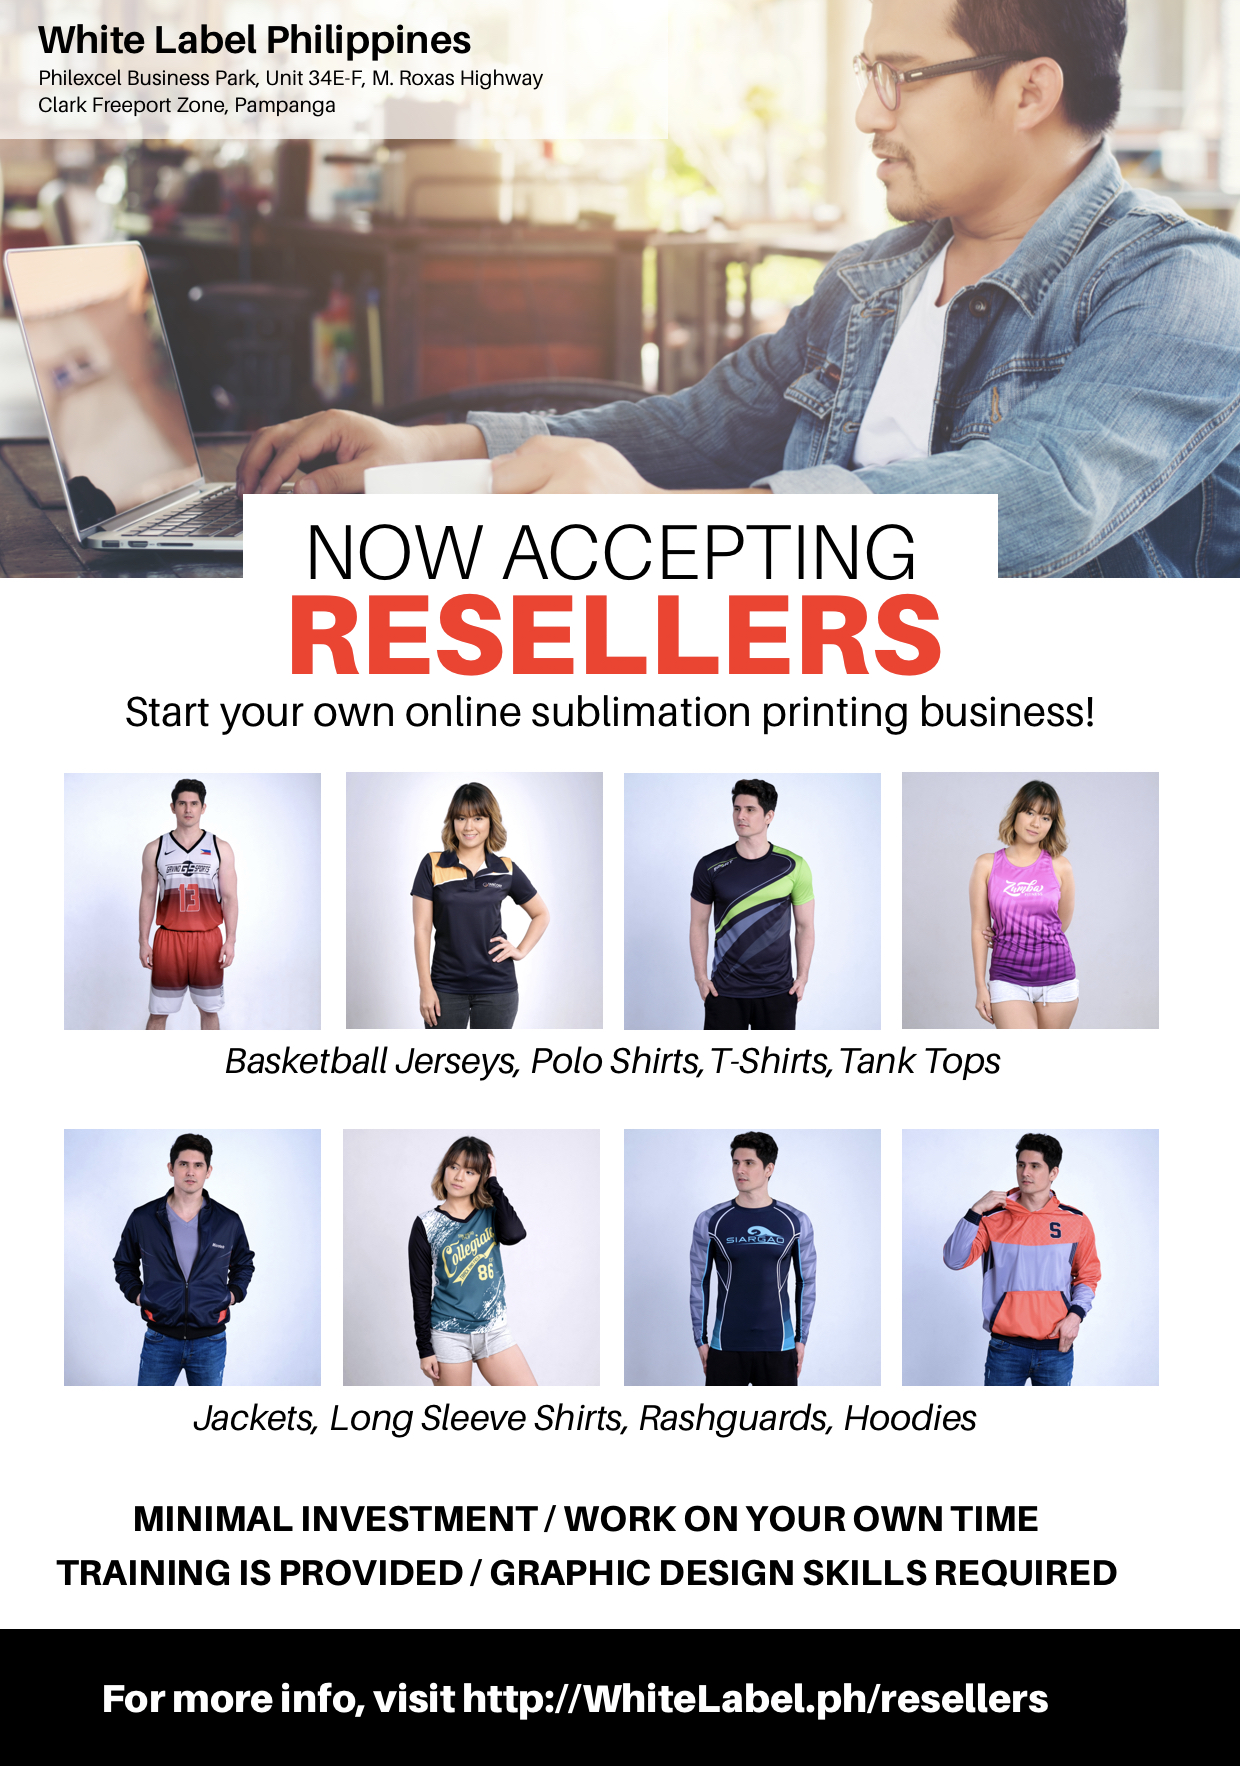 Reseller Program - White Label Resellers - International Resellers Wanted